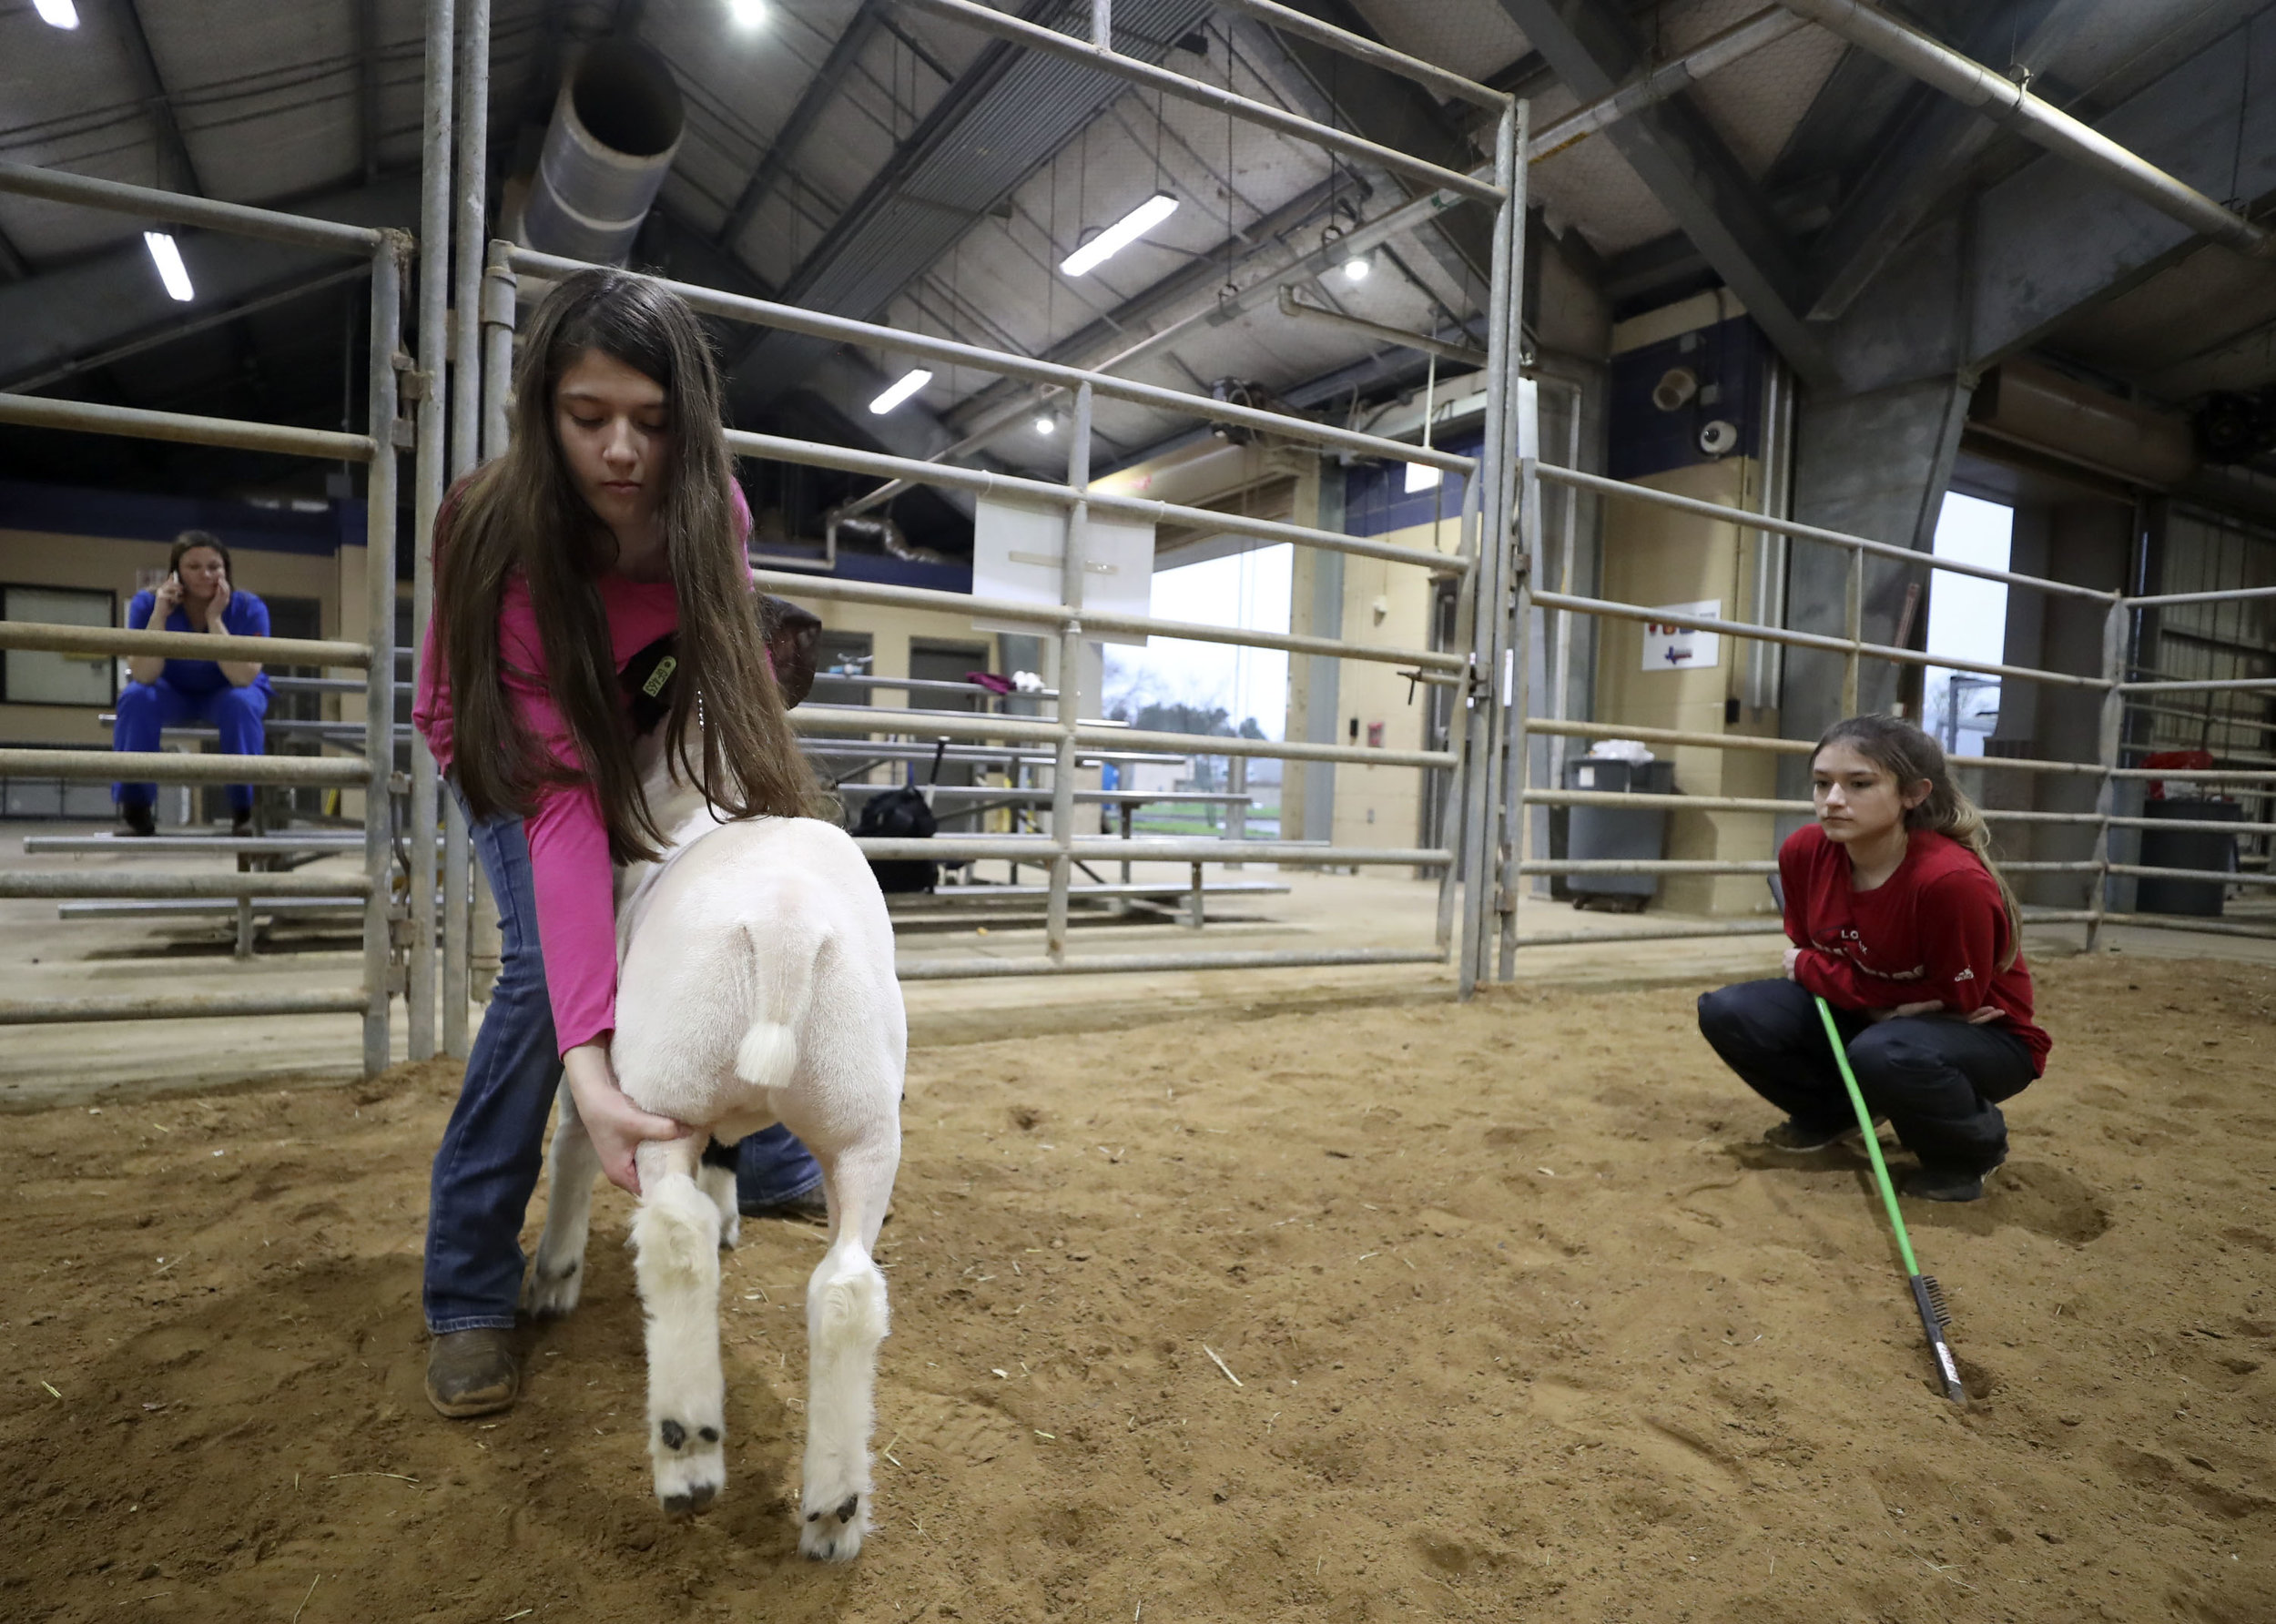 Morgan Perez helps her sister, Destiny, pose her goat in the practice arena as their mom looks on at the Dickinson Agriculture Science Facility on Tuesday, Feb. 26, 2019. Their mother, Christy Perez, frequently helps and watches the girls take care of their animals.